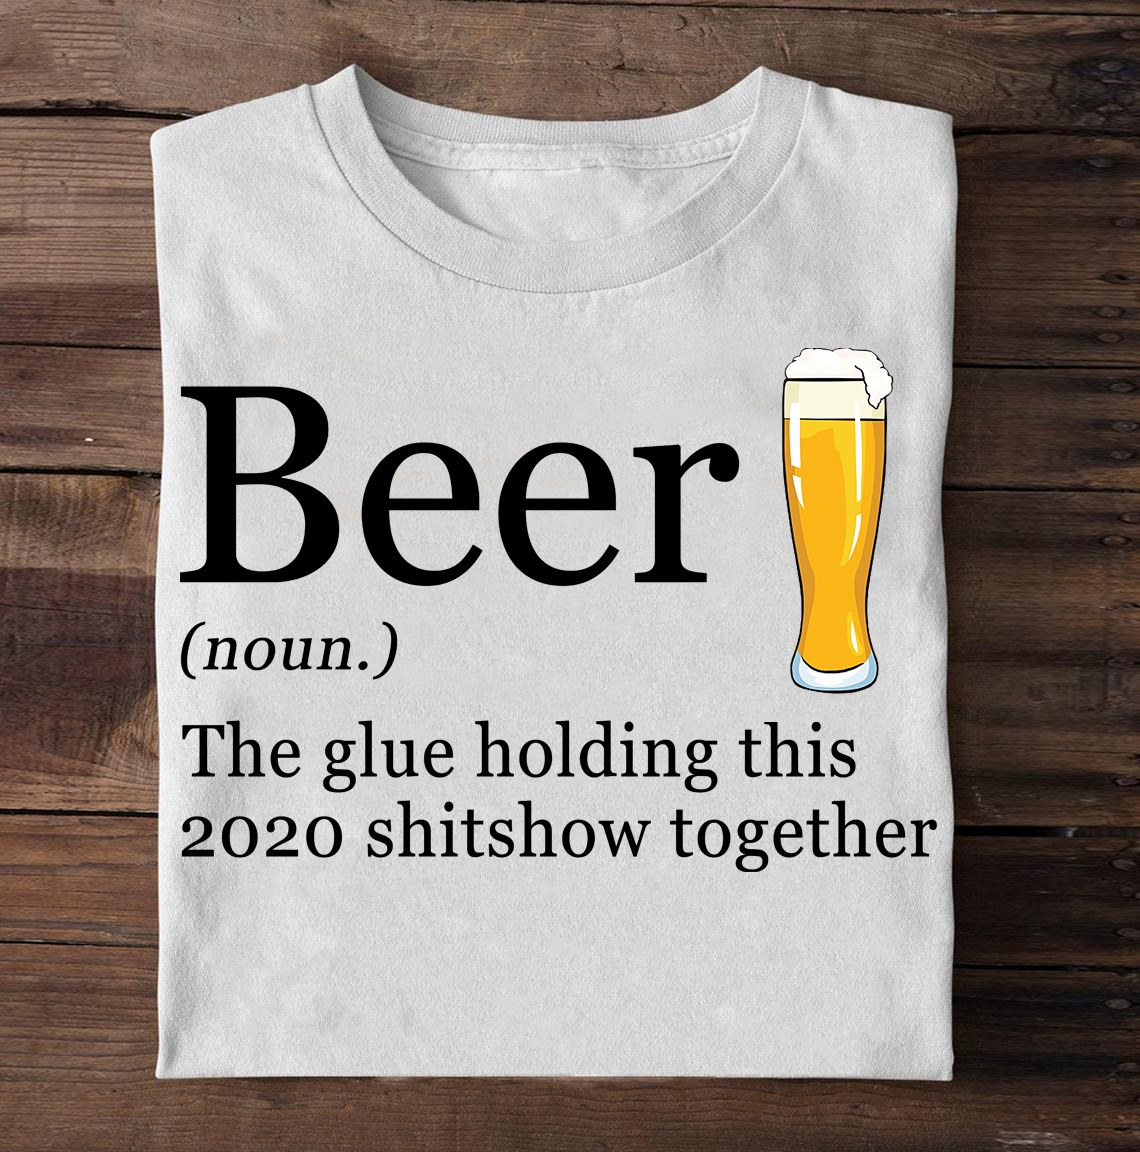 Beer the glue holding this 2020 shitshiw together shirt 6 Picturestees Clothing - T Shirt Printing on Demand